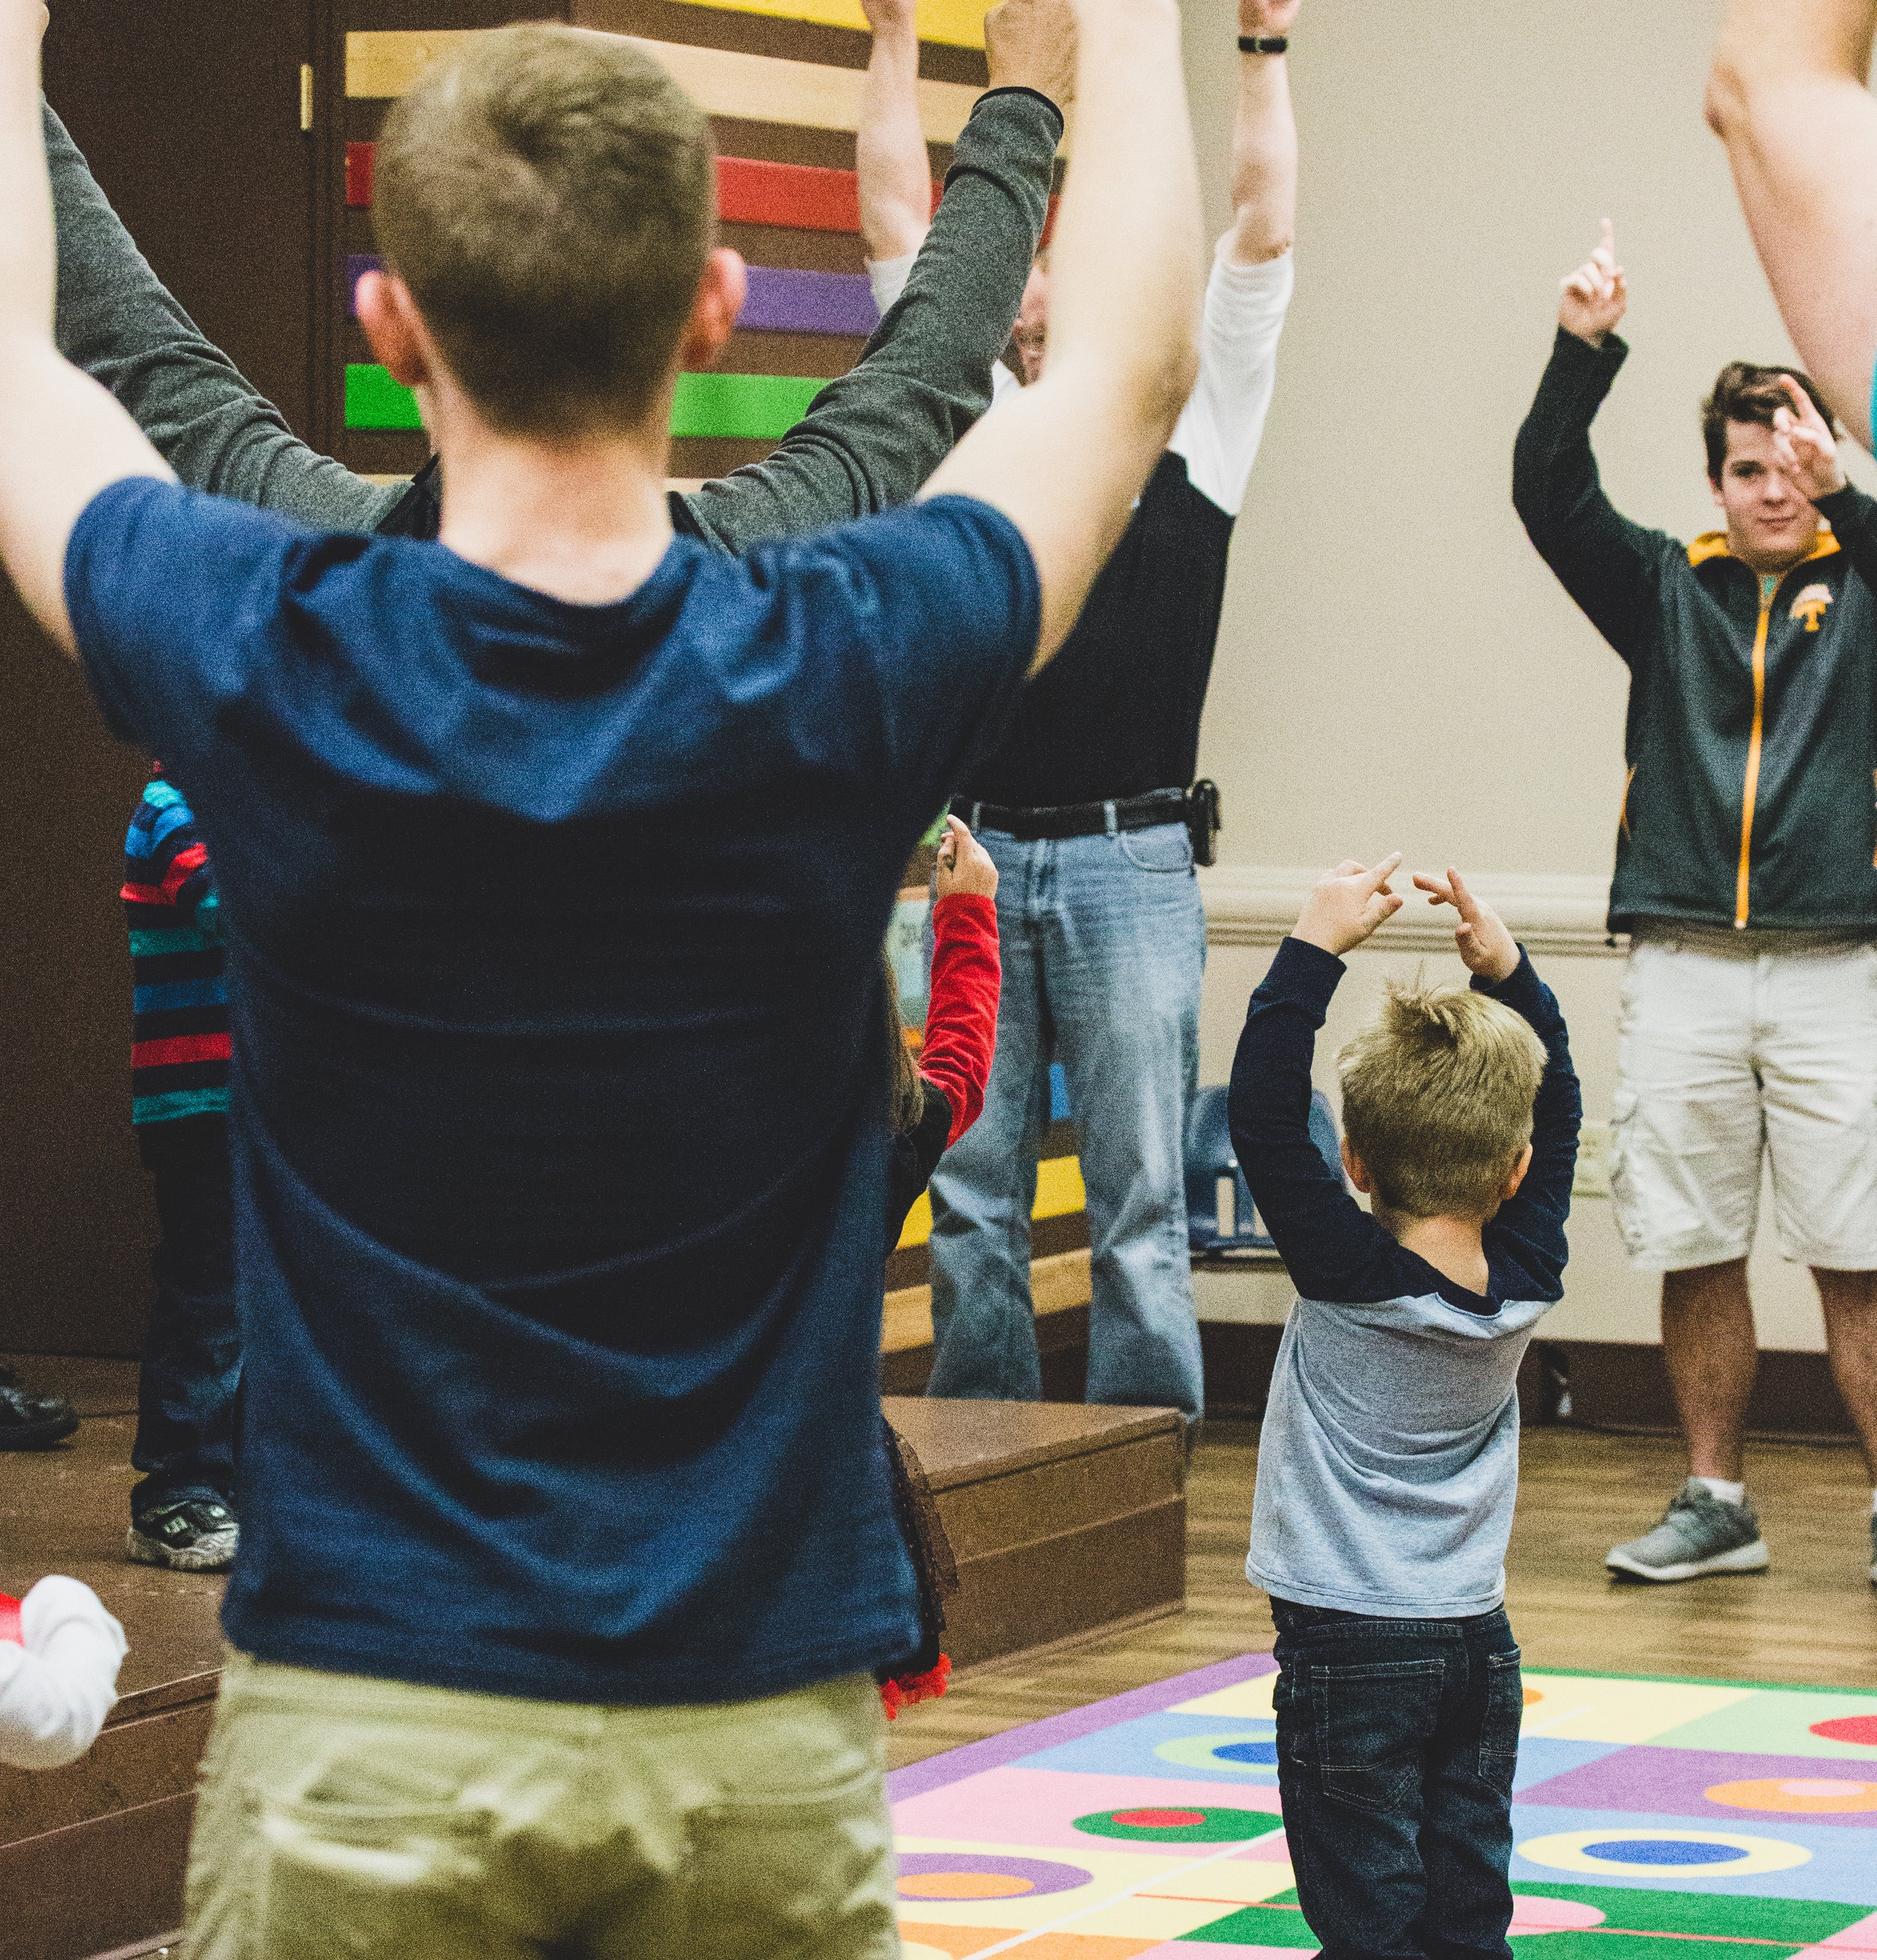 Want to serve in Preschool? - Help make a difference in preschoolers' lives.